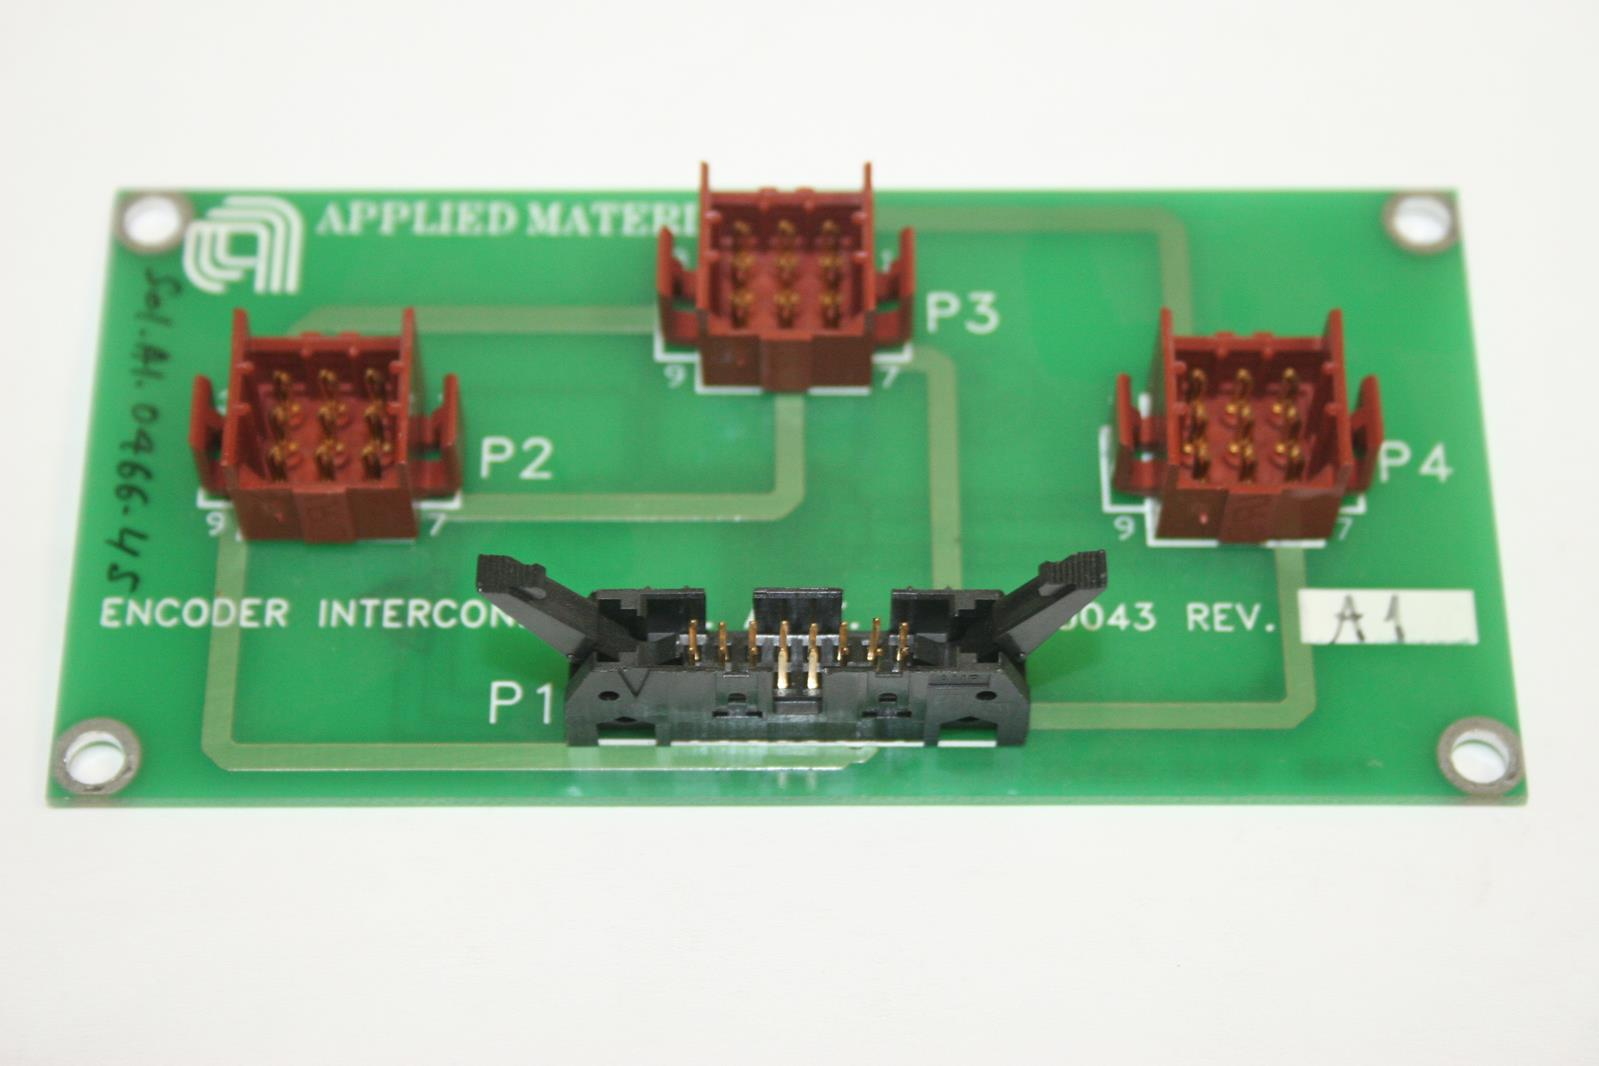 Details about APPLIED MATERIALS 0100-20043 Encoder Interconnect PCB Assembly